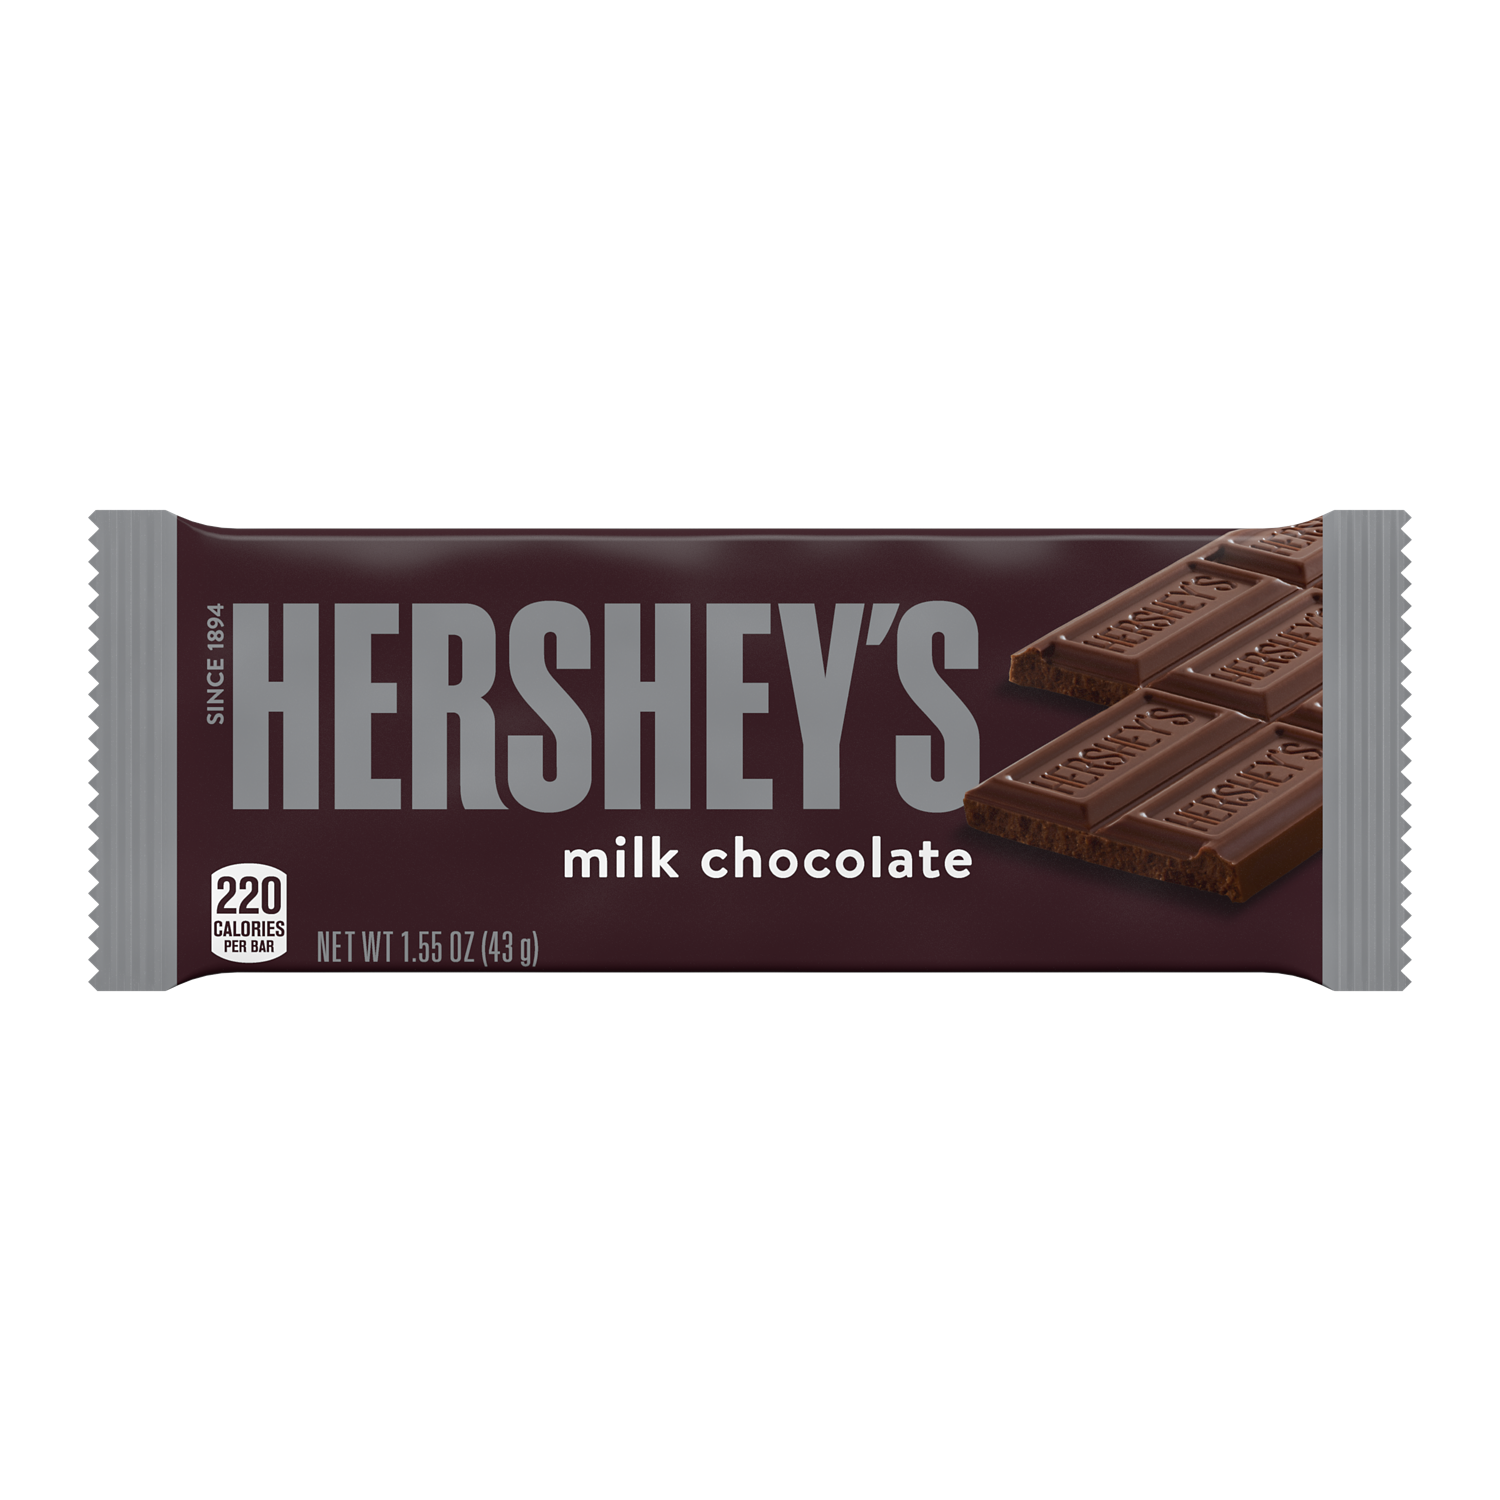 HERSHEY'S Milk Chocolate Candy Bar, 1.55 oz - Front of Package